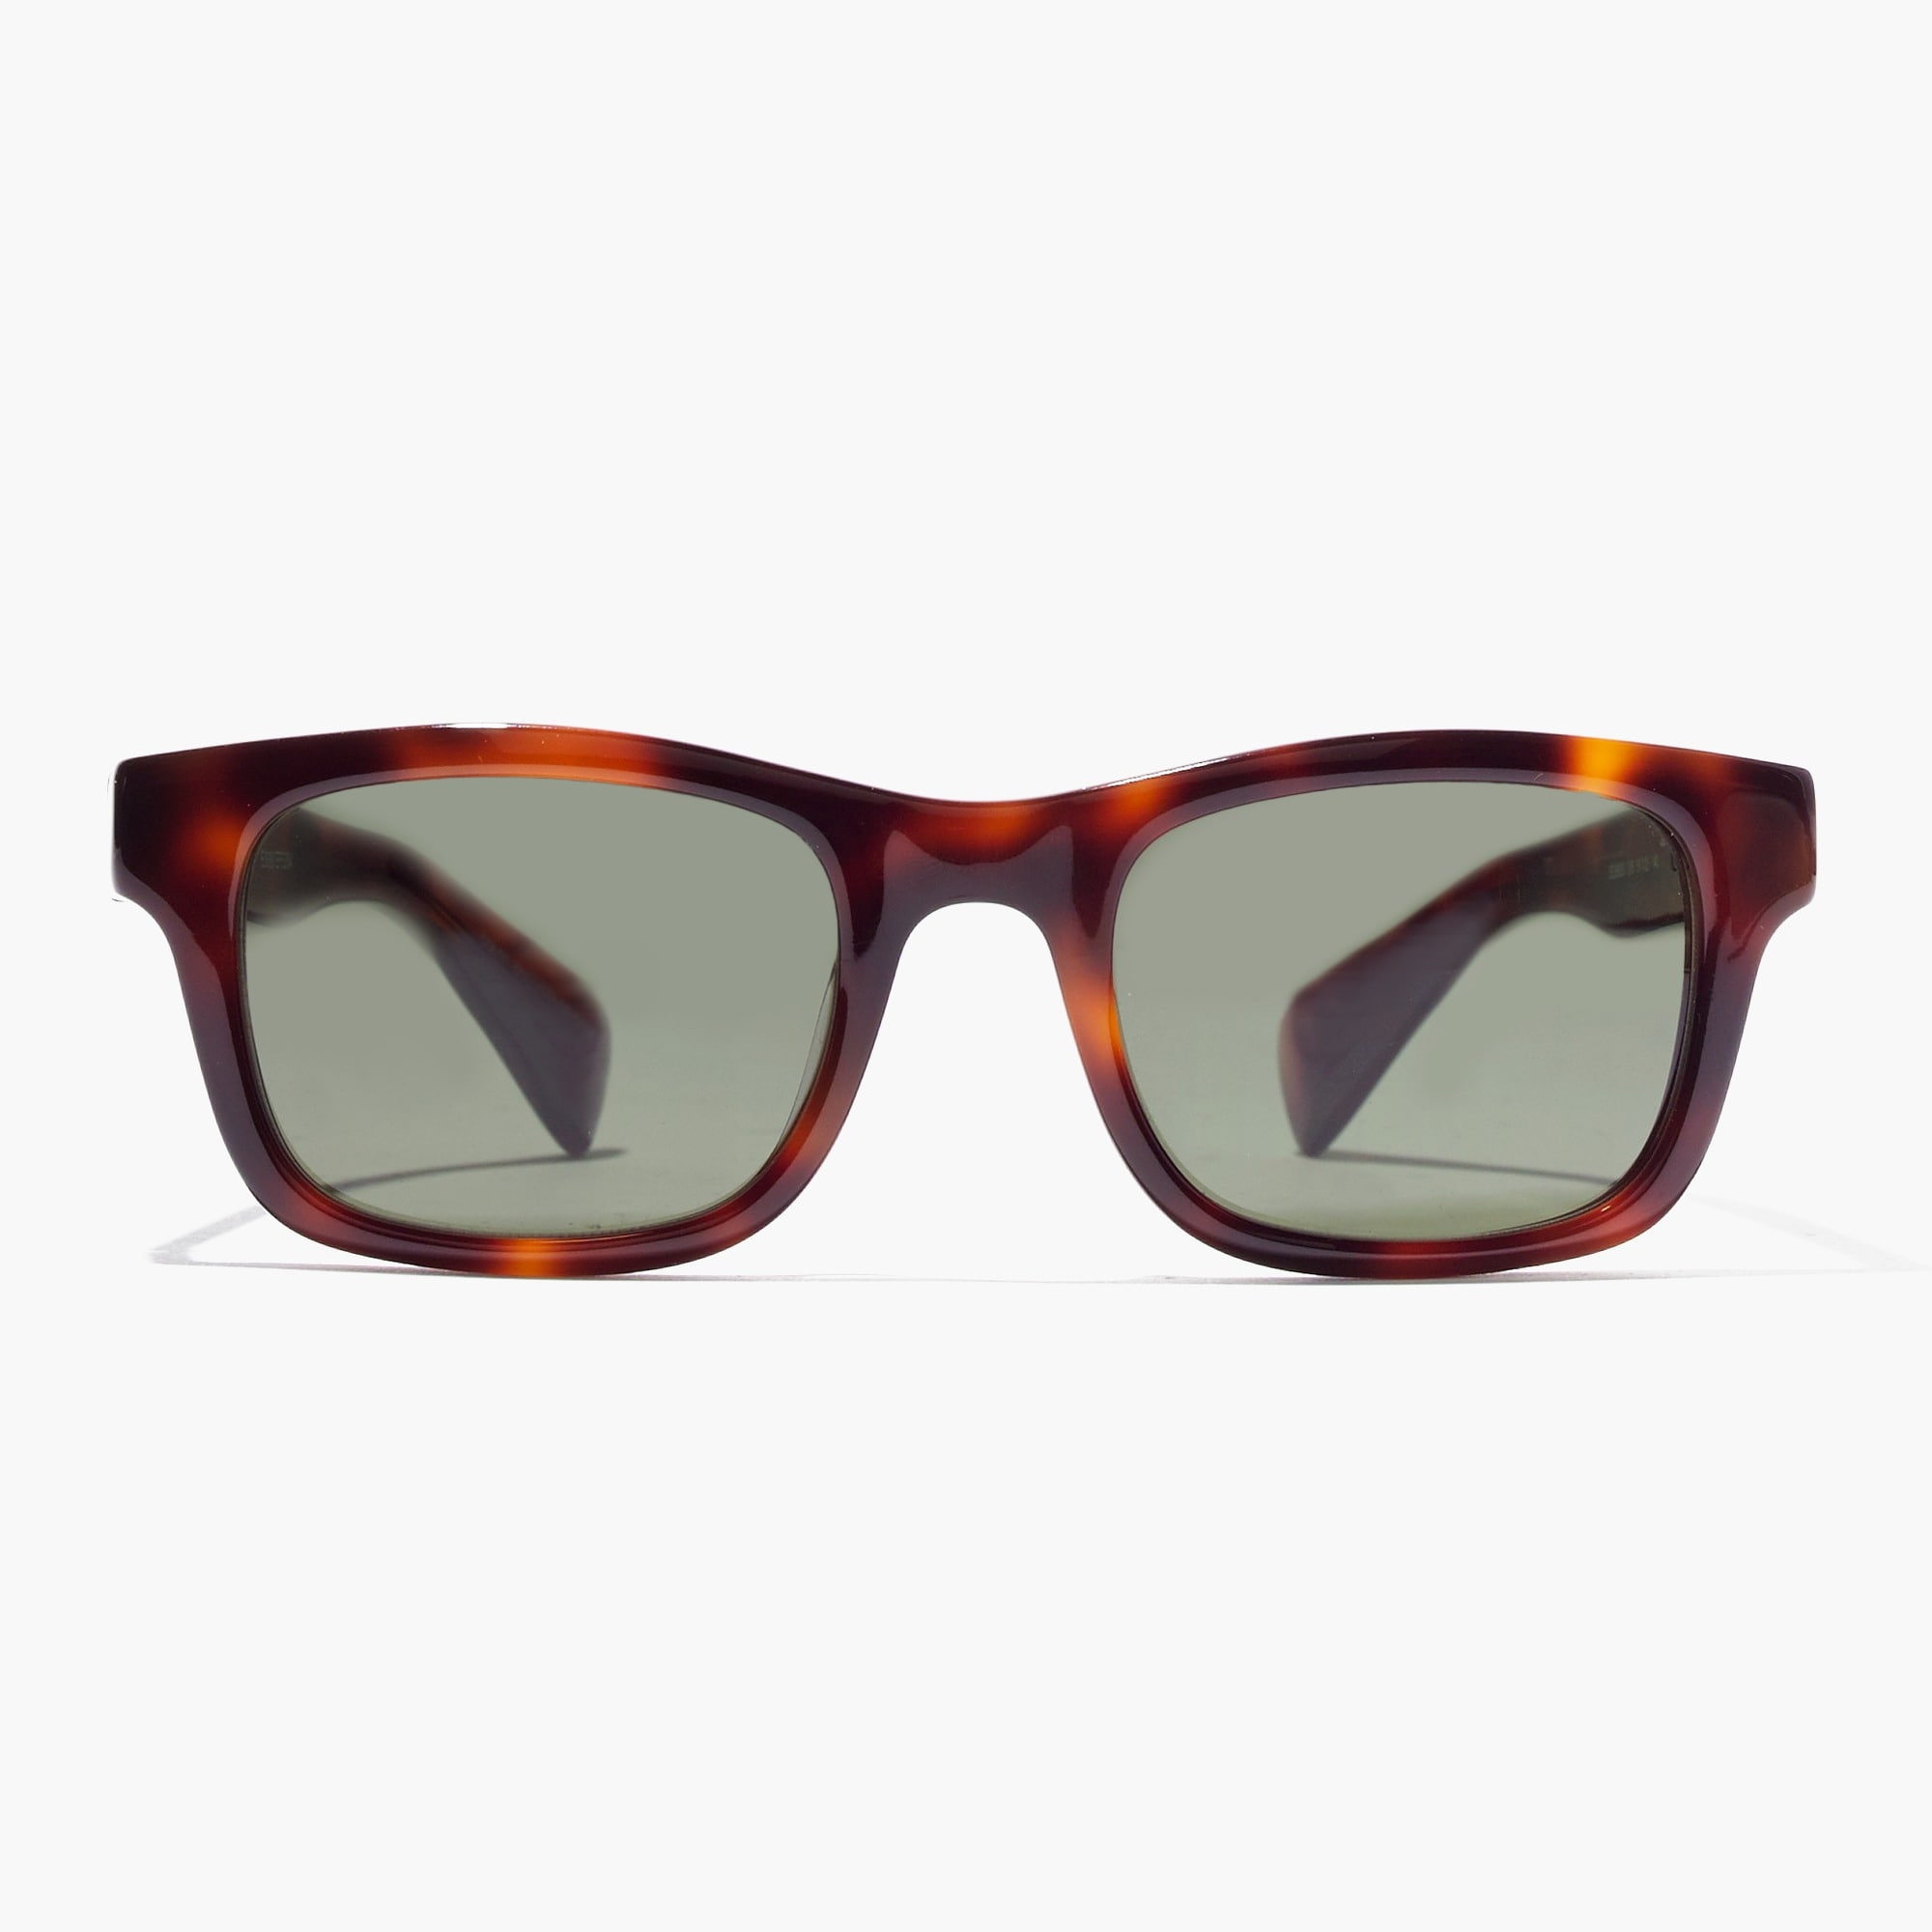 men's irving sunglasses - men's accessories